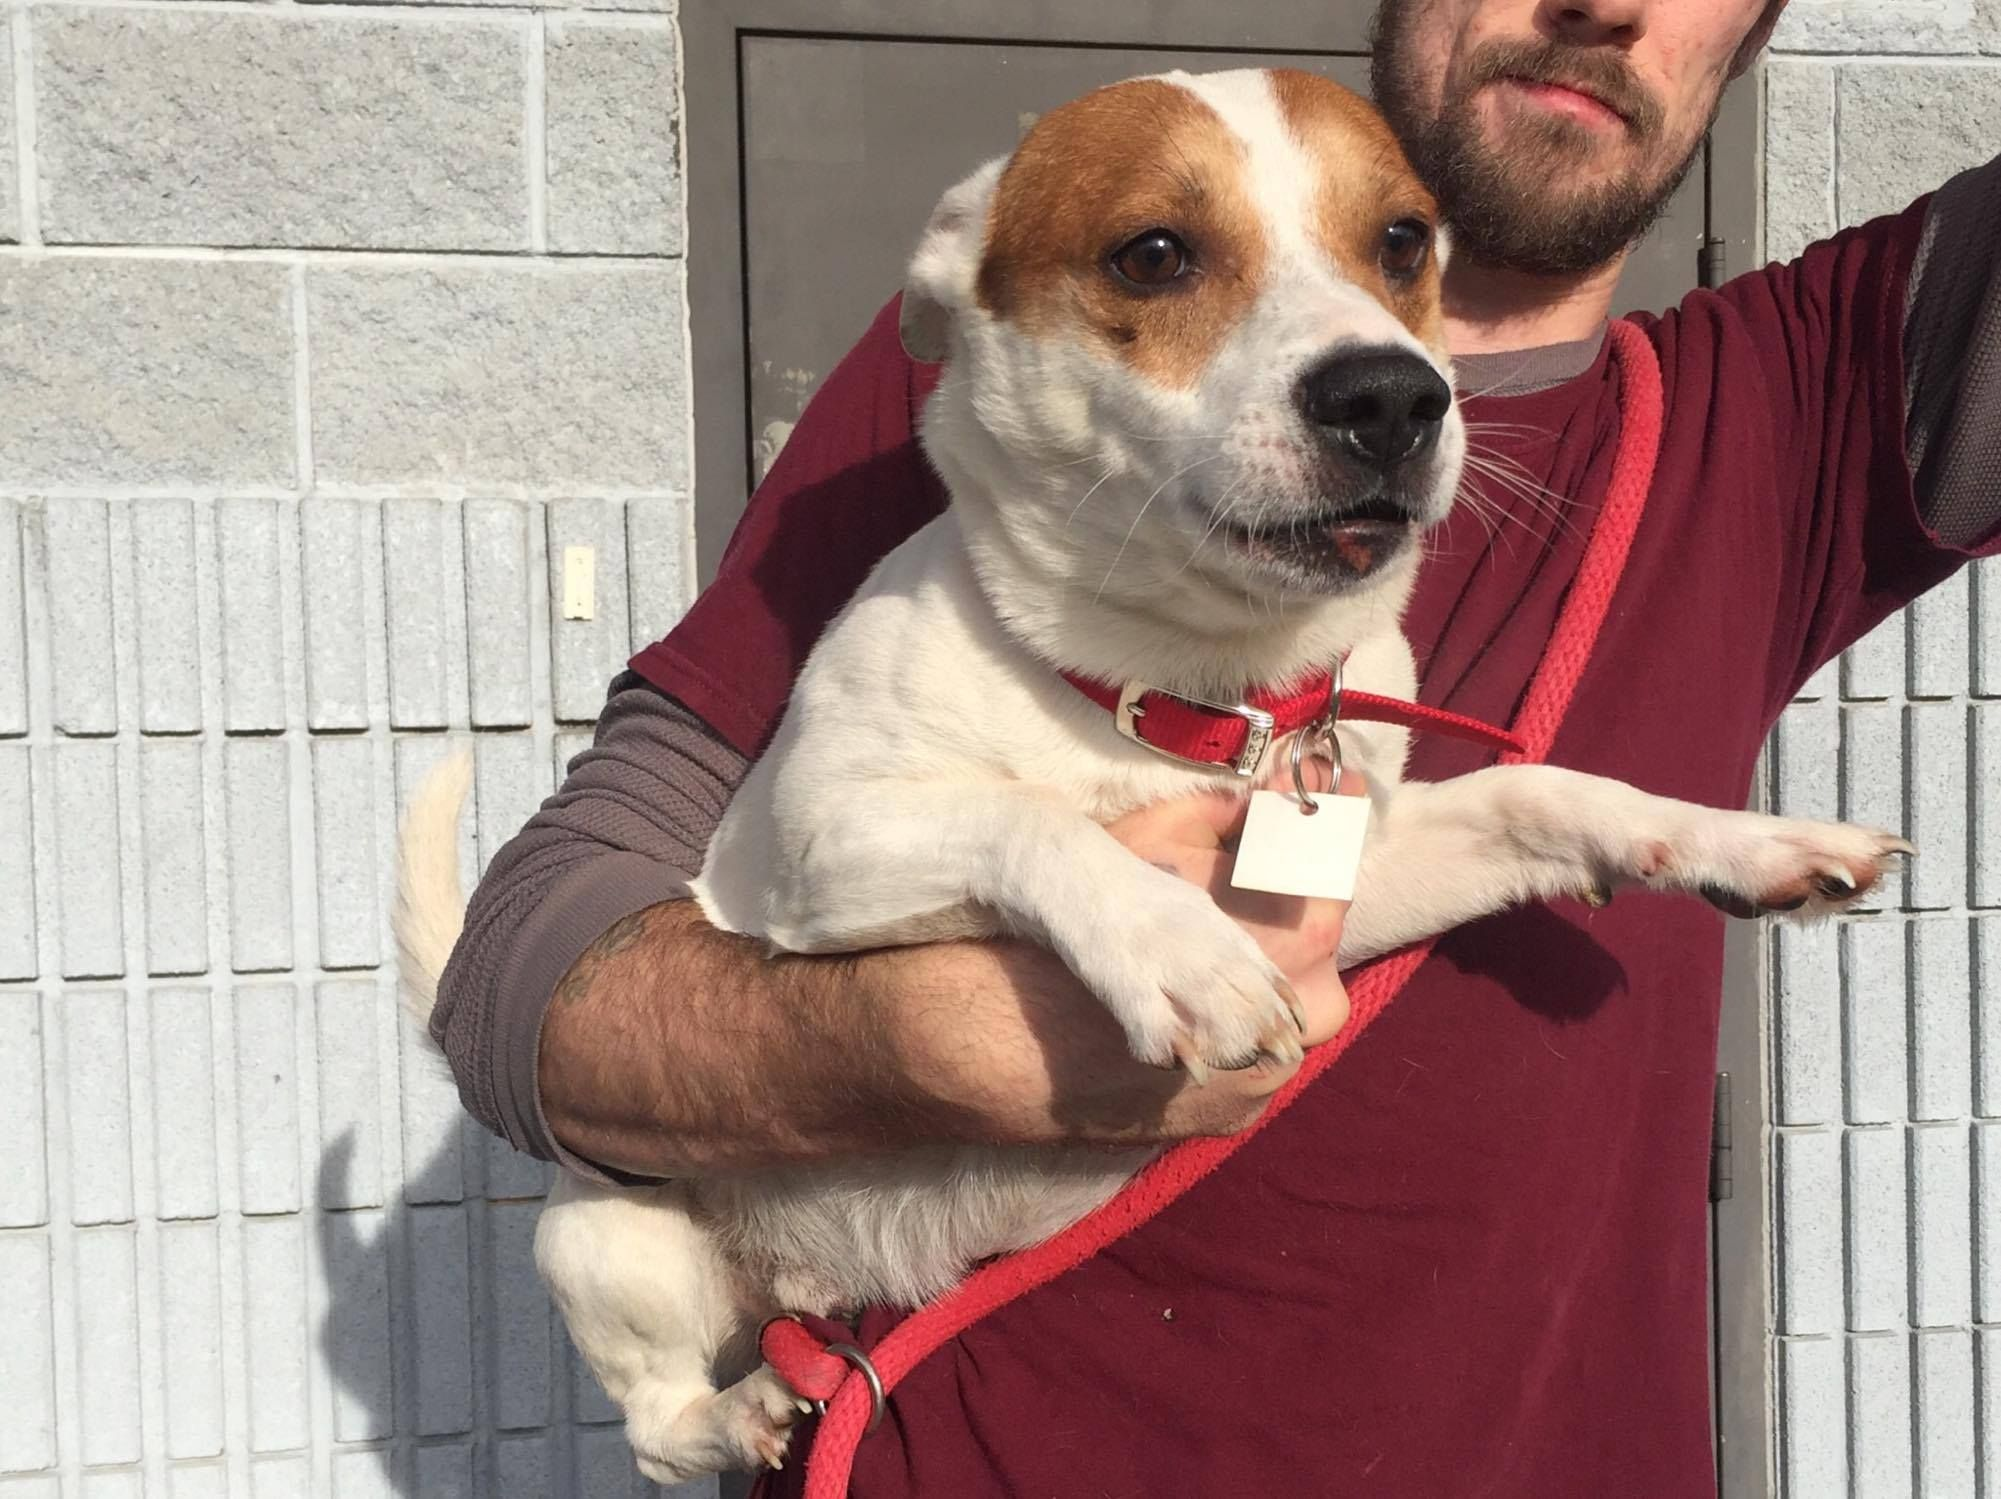 Jack Russell Terrier dog for Adoption in Beckley, WV. ADN